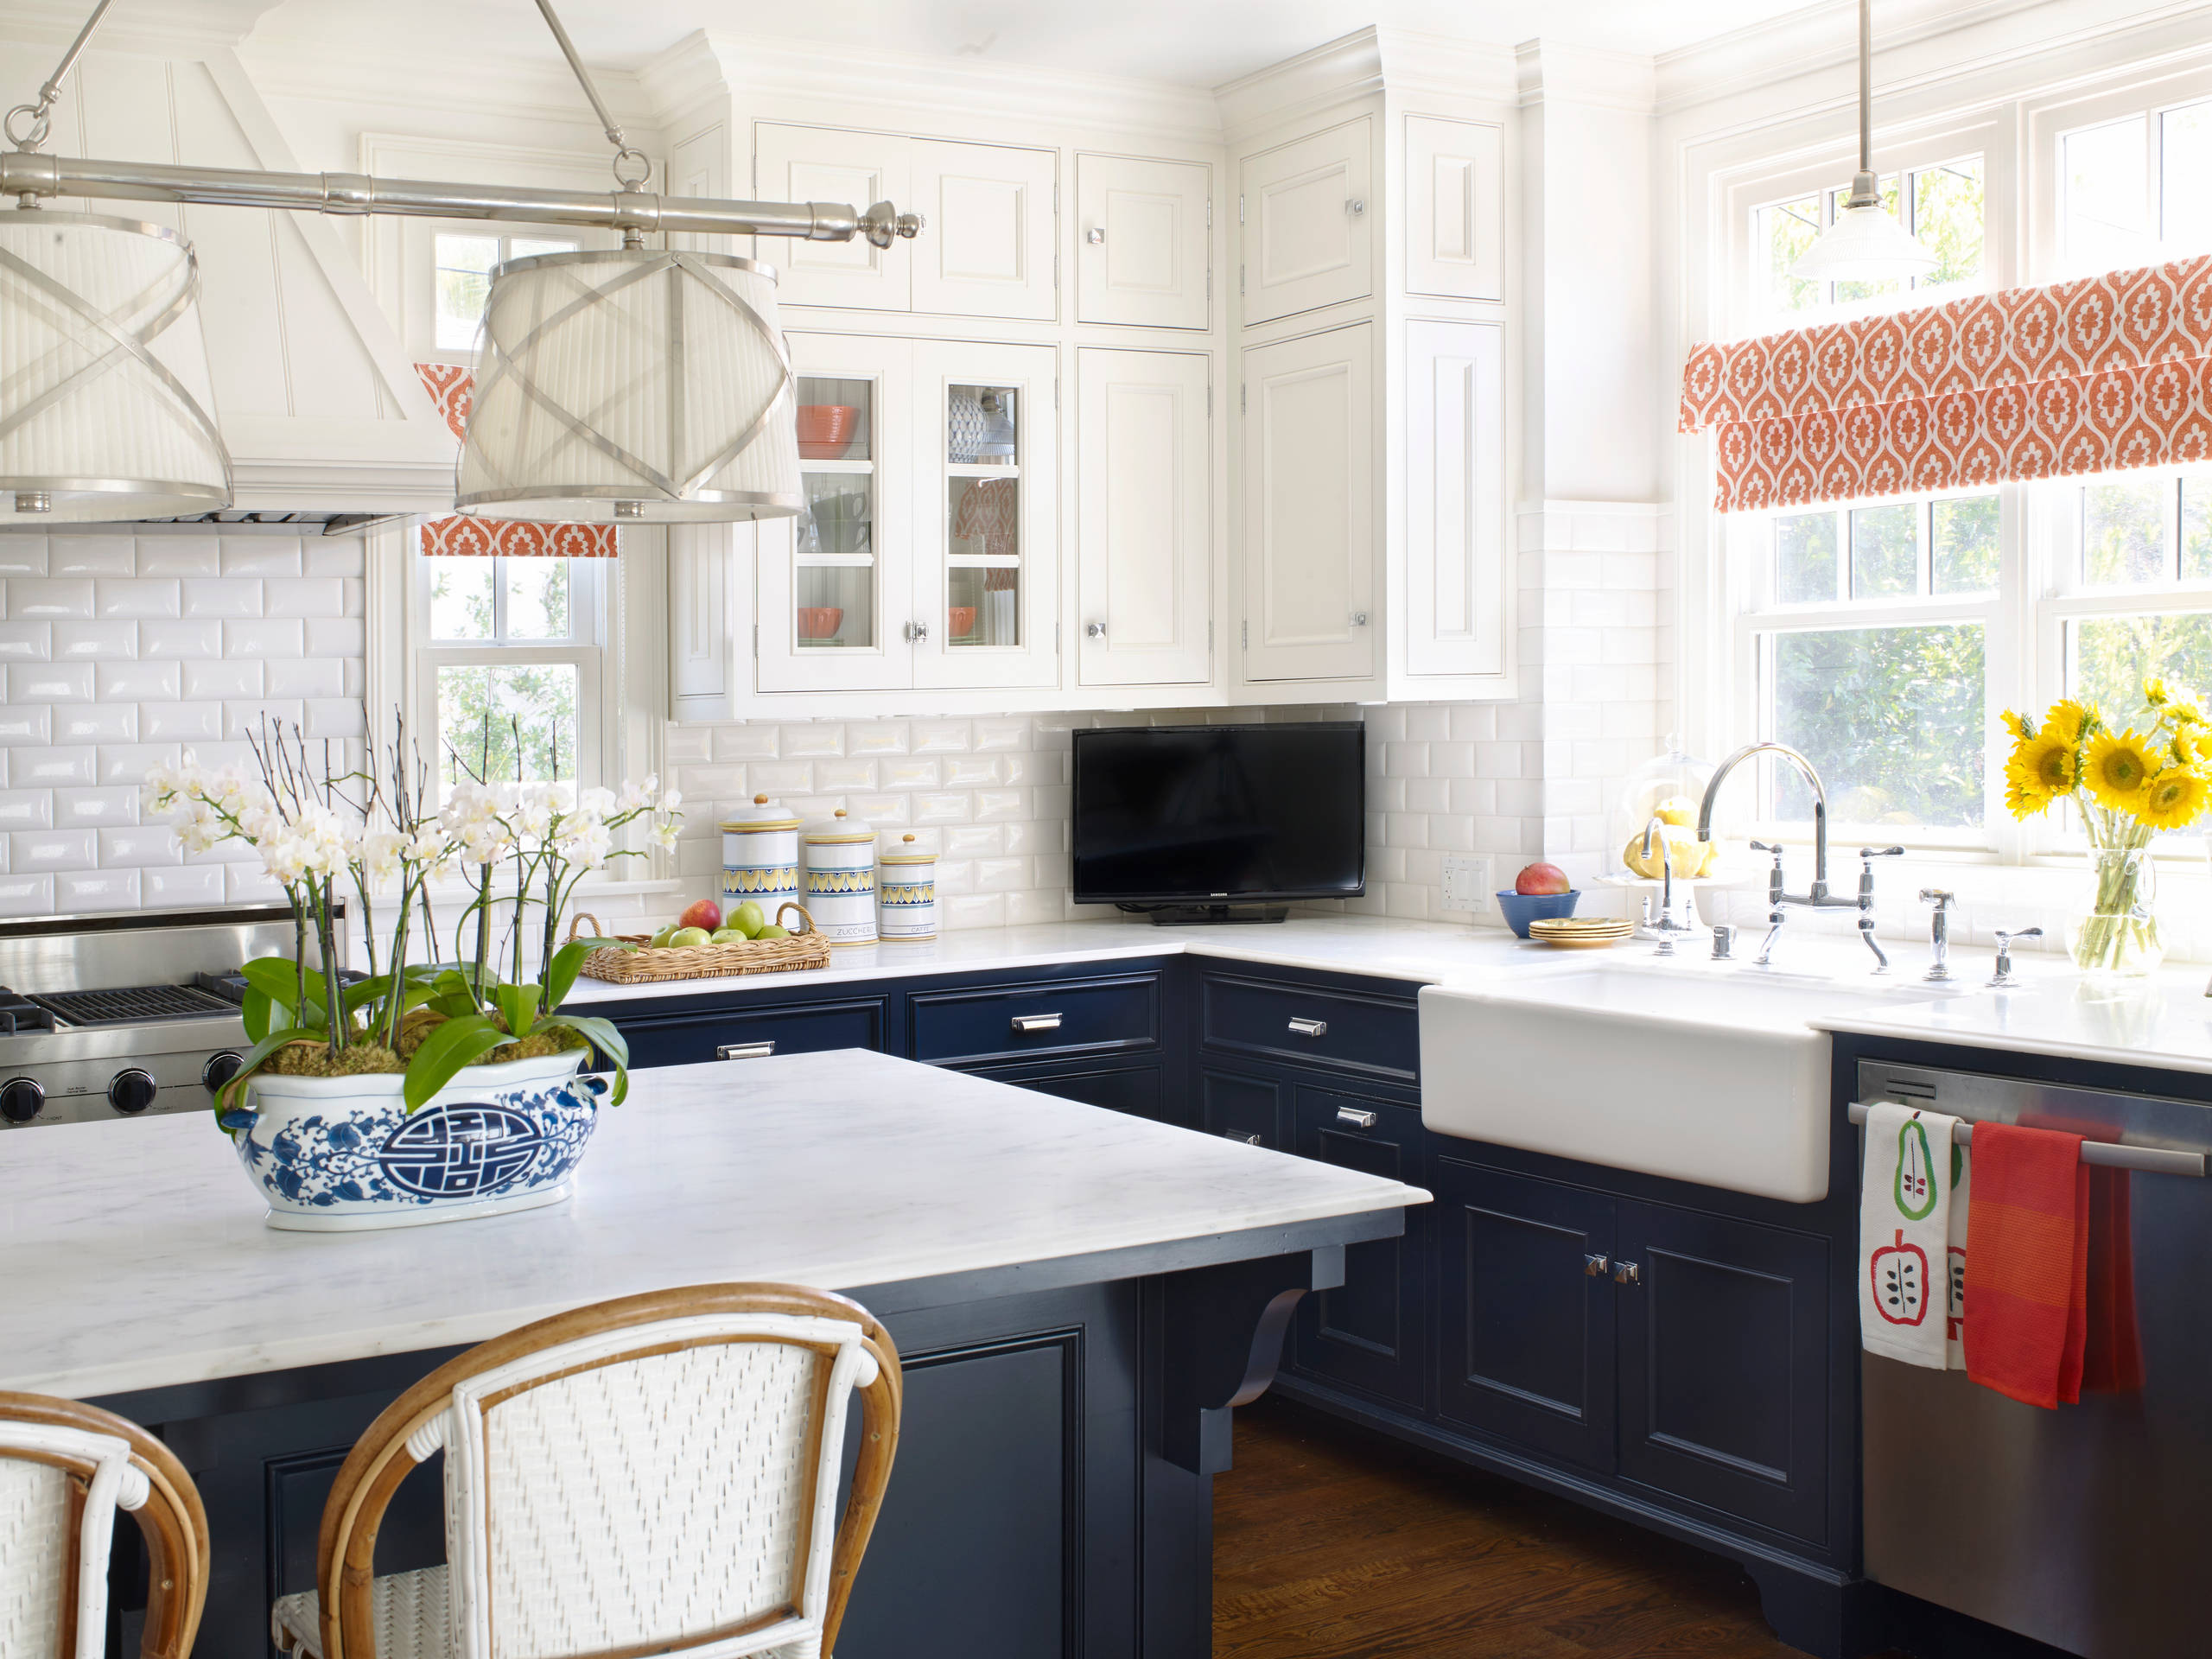 75 Beautiful Kitchen With Blue Cabinets And Marble Countertops Pictures Ideas December 2020 Houzz